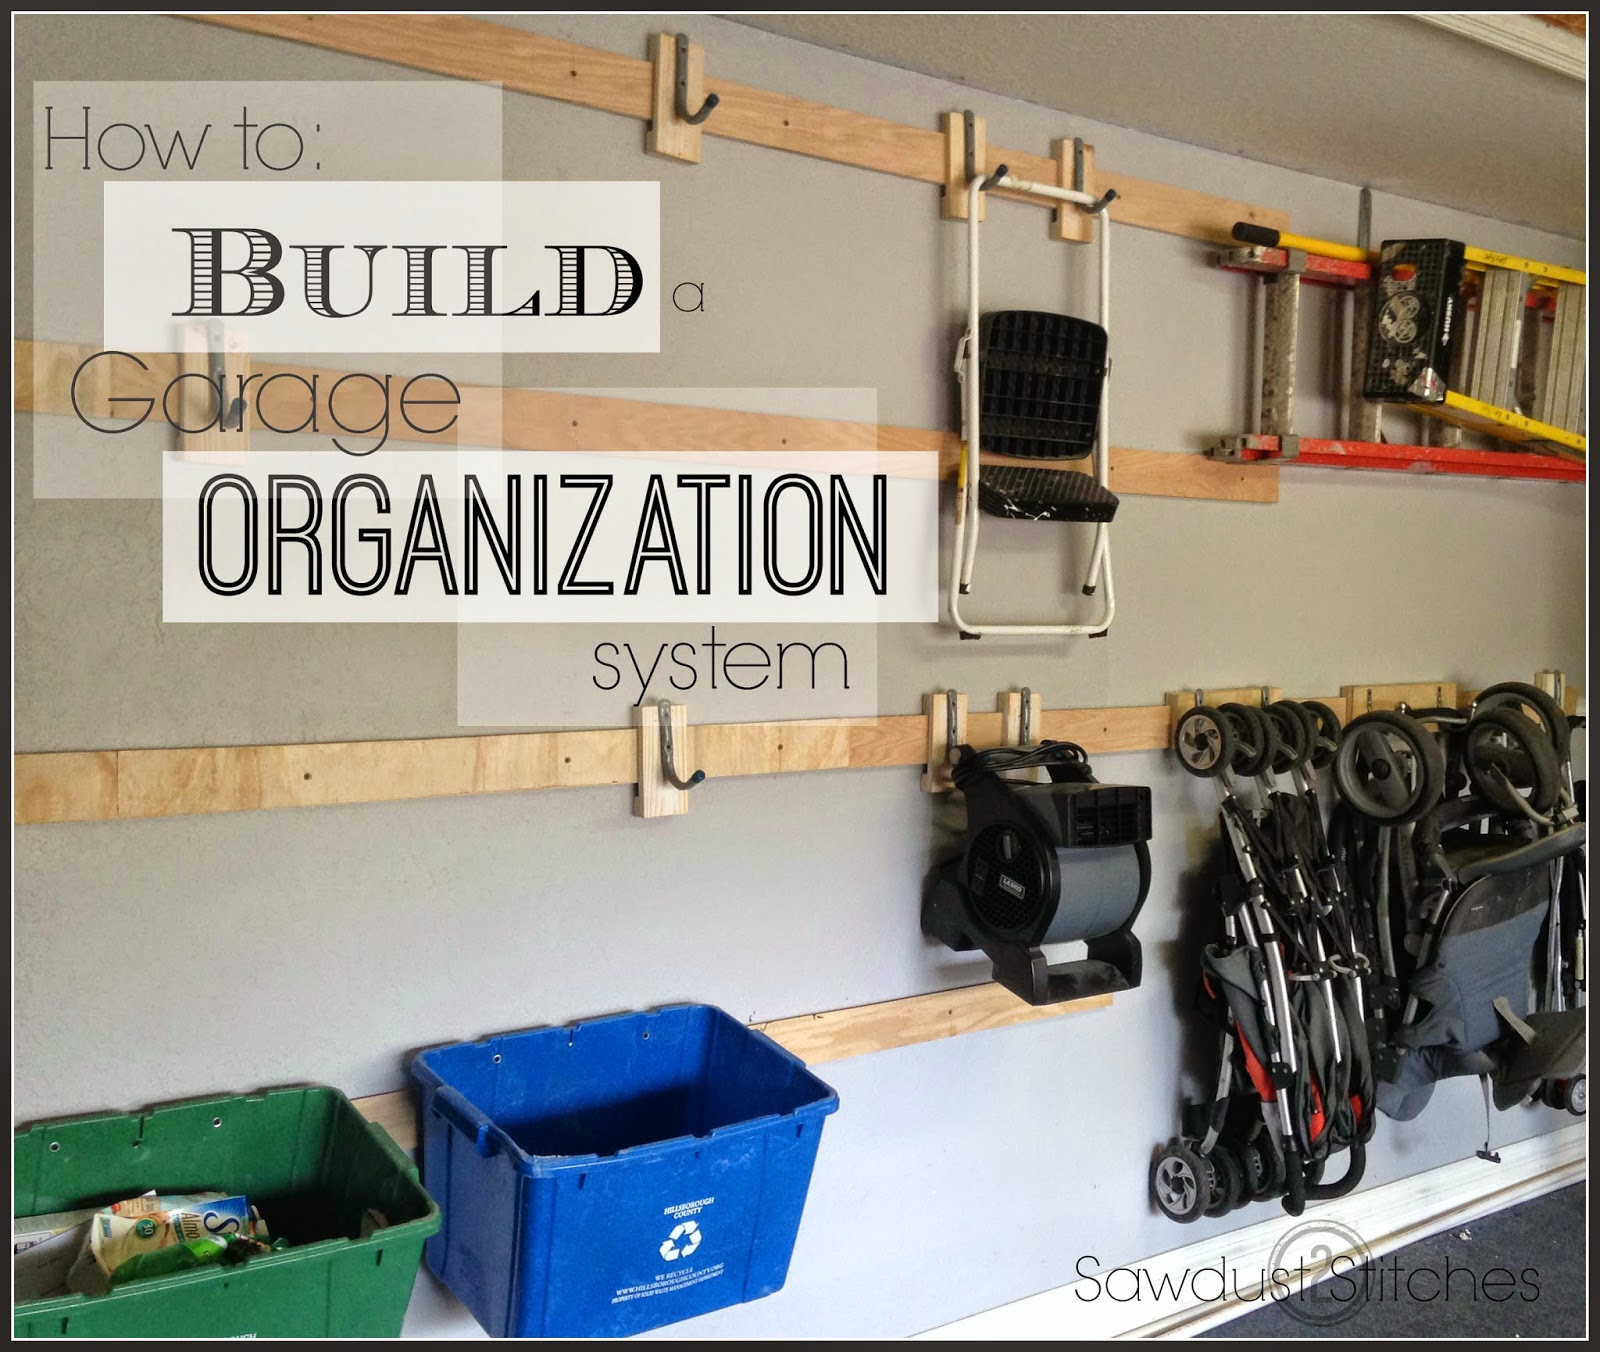 Garage Organization Shelving: Sawdust 2 Stitches